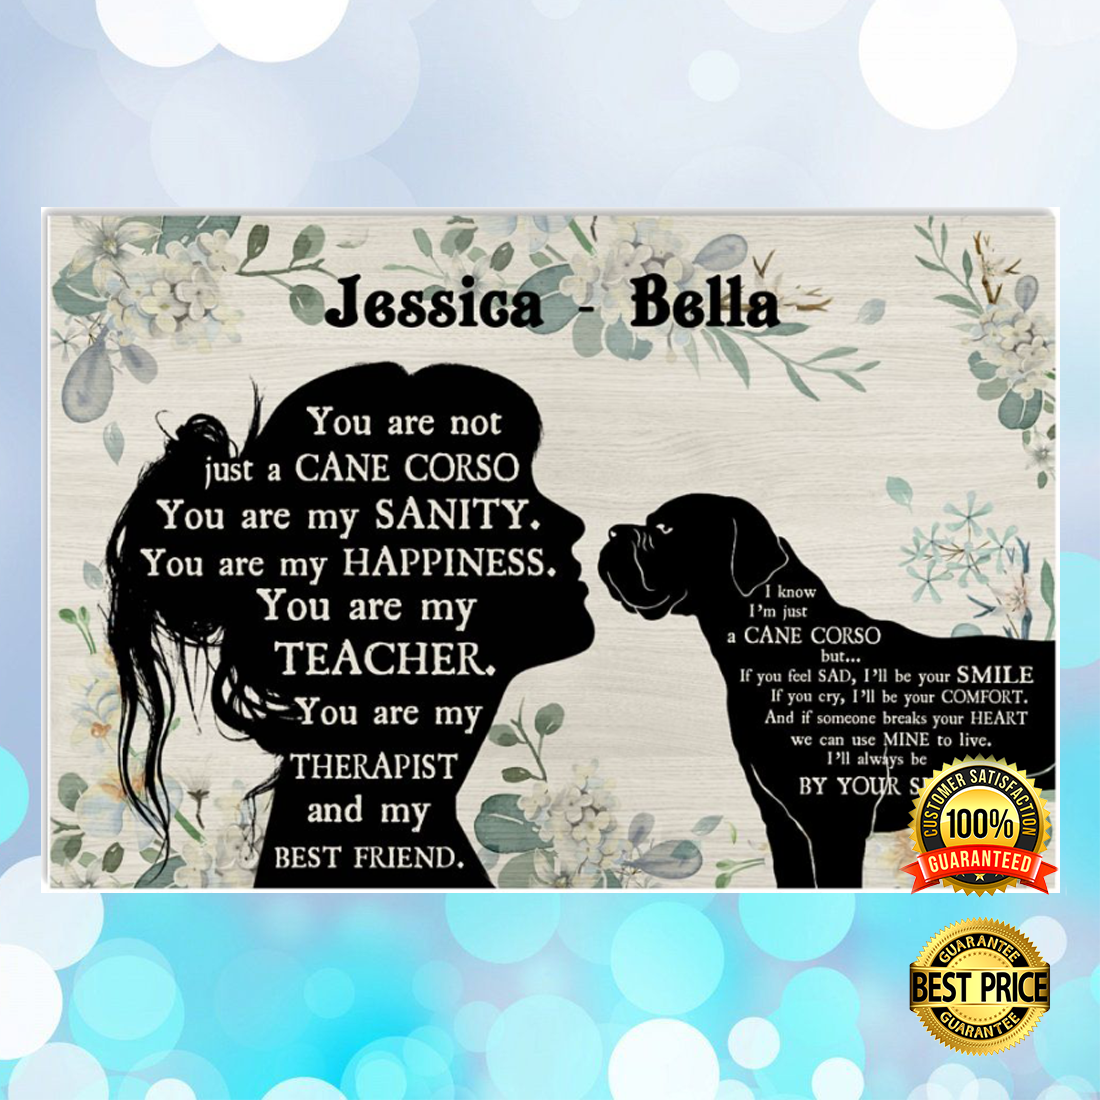 PERSONALIZED GIRL AND CANE CORSE YOU ARE NOT JUST A CANE CORSE POSTER 6